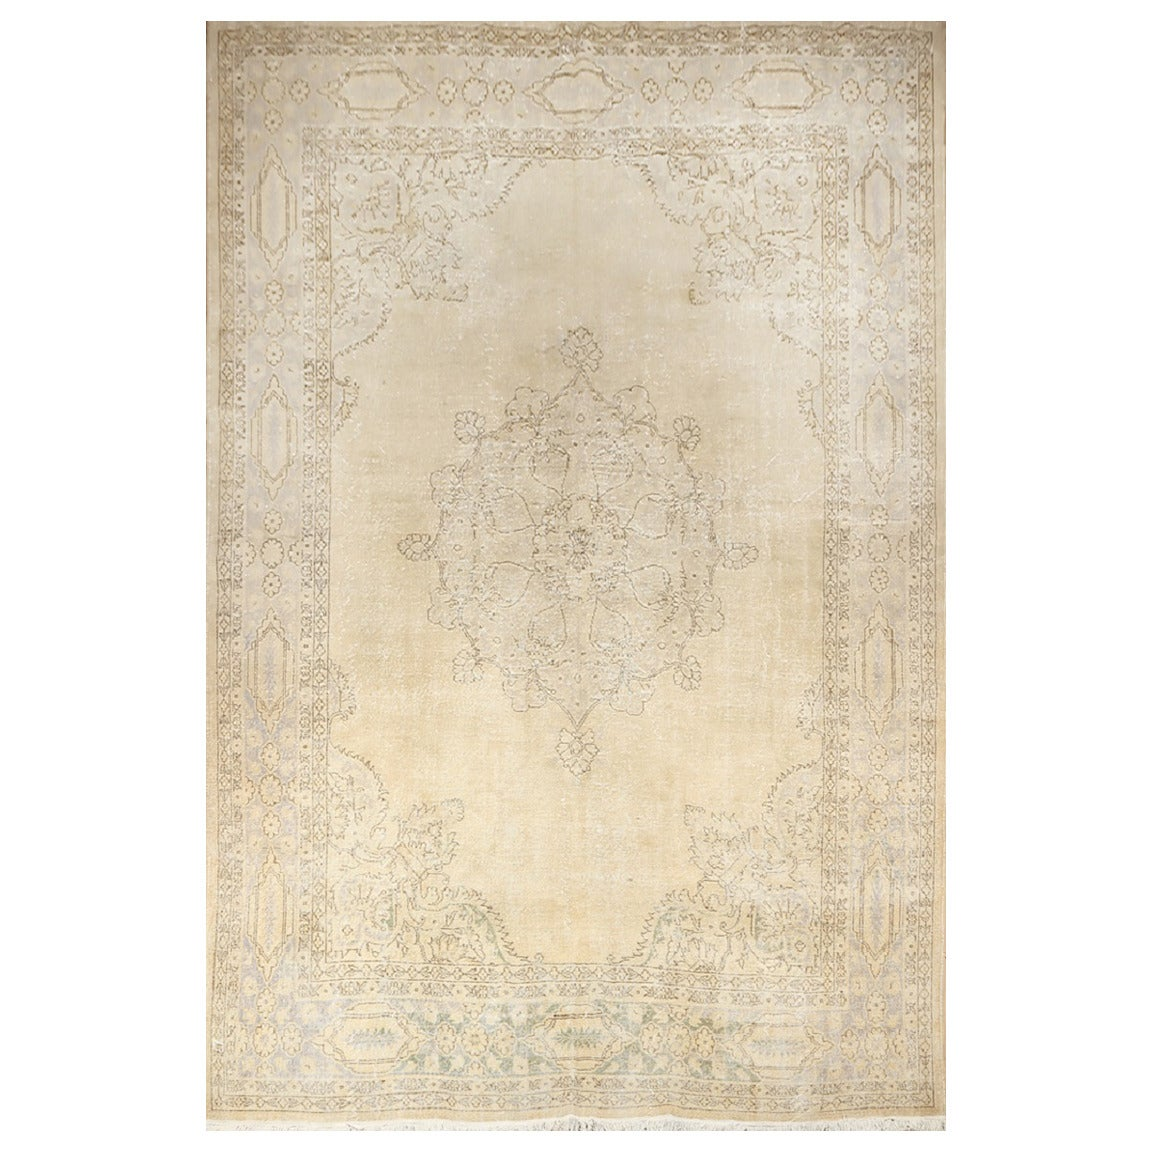 Oushak Rugs For Sale: Muted Turkish Oushak Rug For Sale At 1stdibs